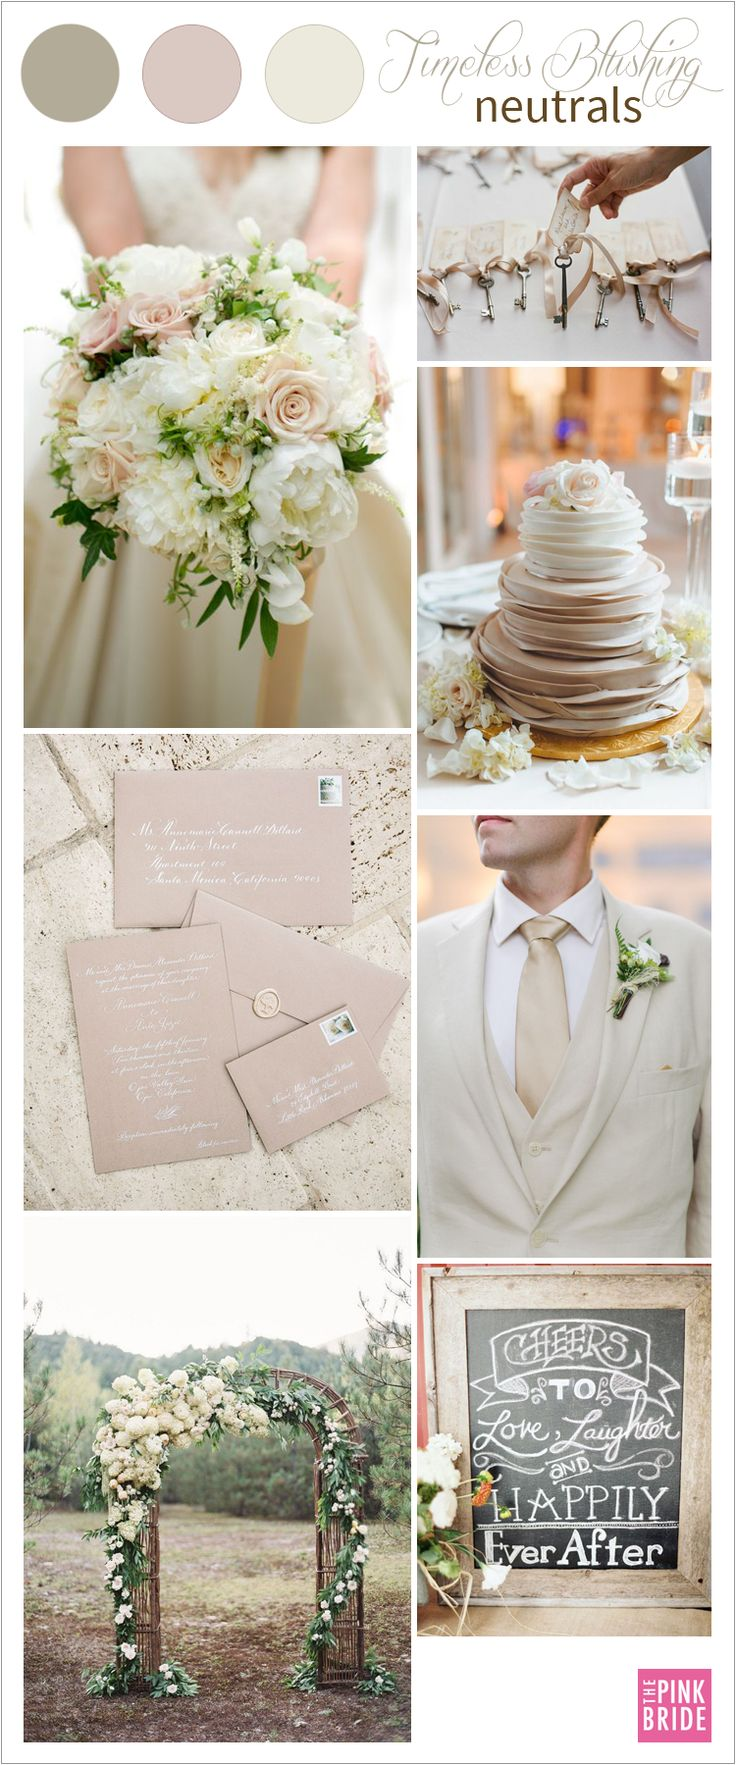 Timeless blushing neutrals wedding color board with nude, champagne, and cream wedding colors | The Pink Bride www.thepinkbride.com